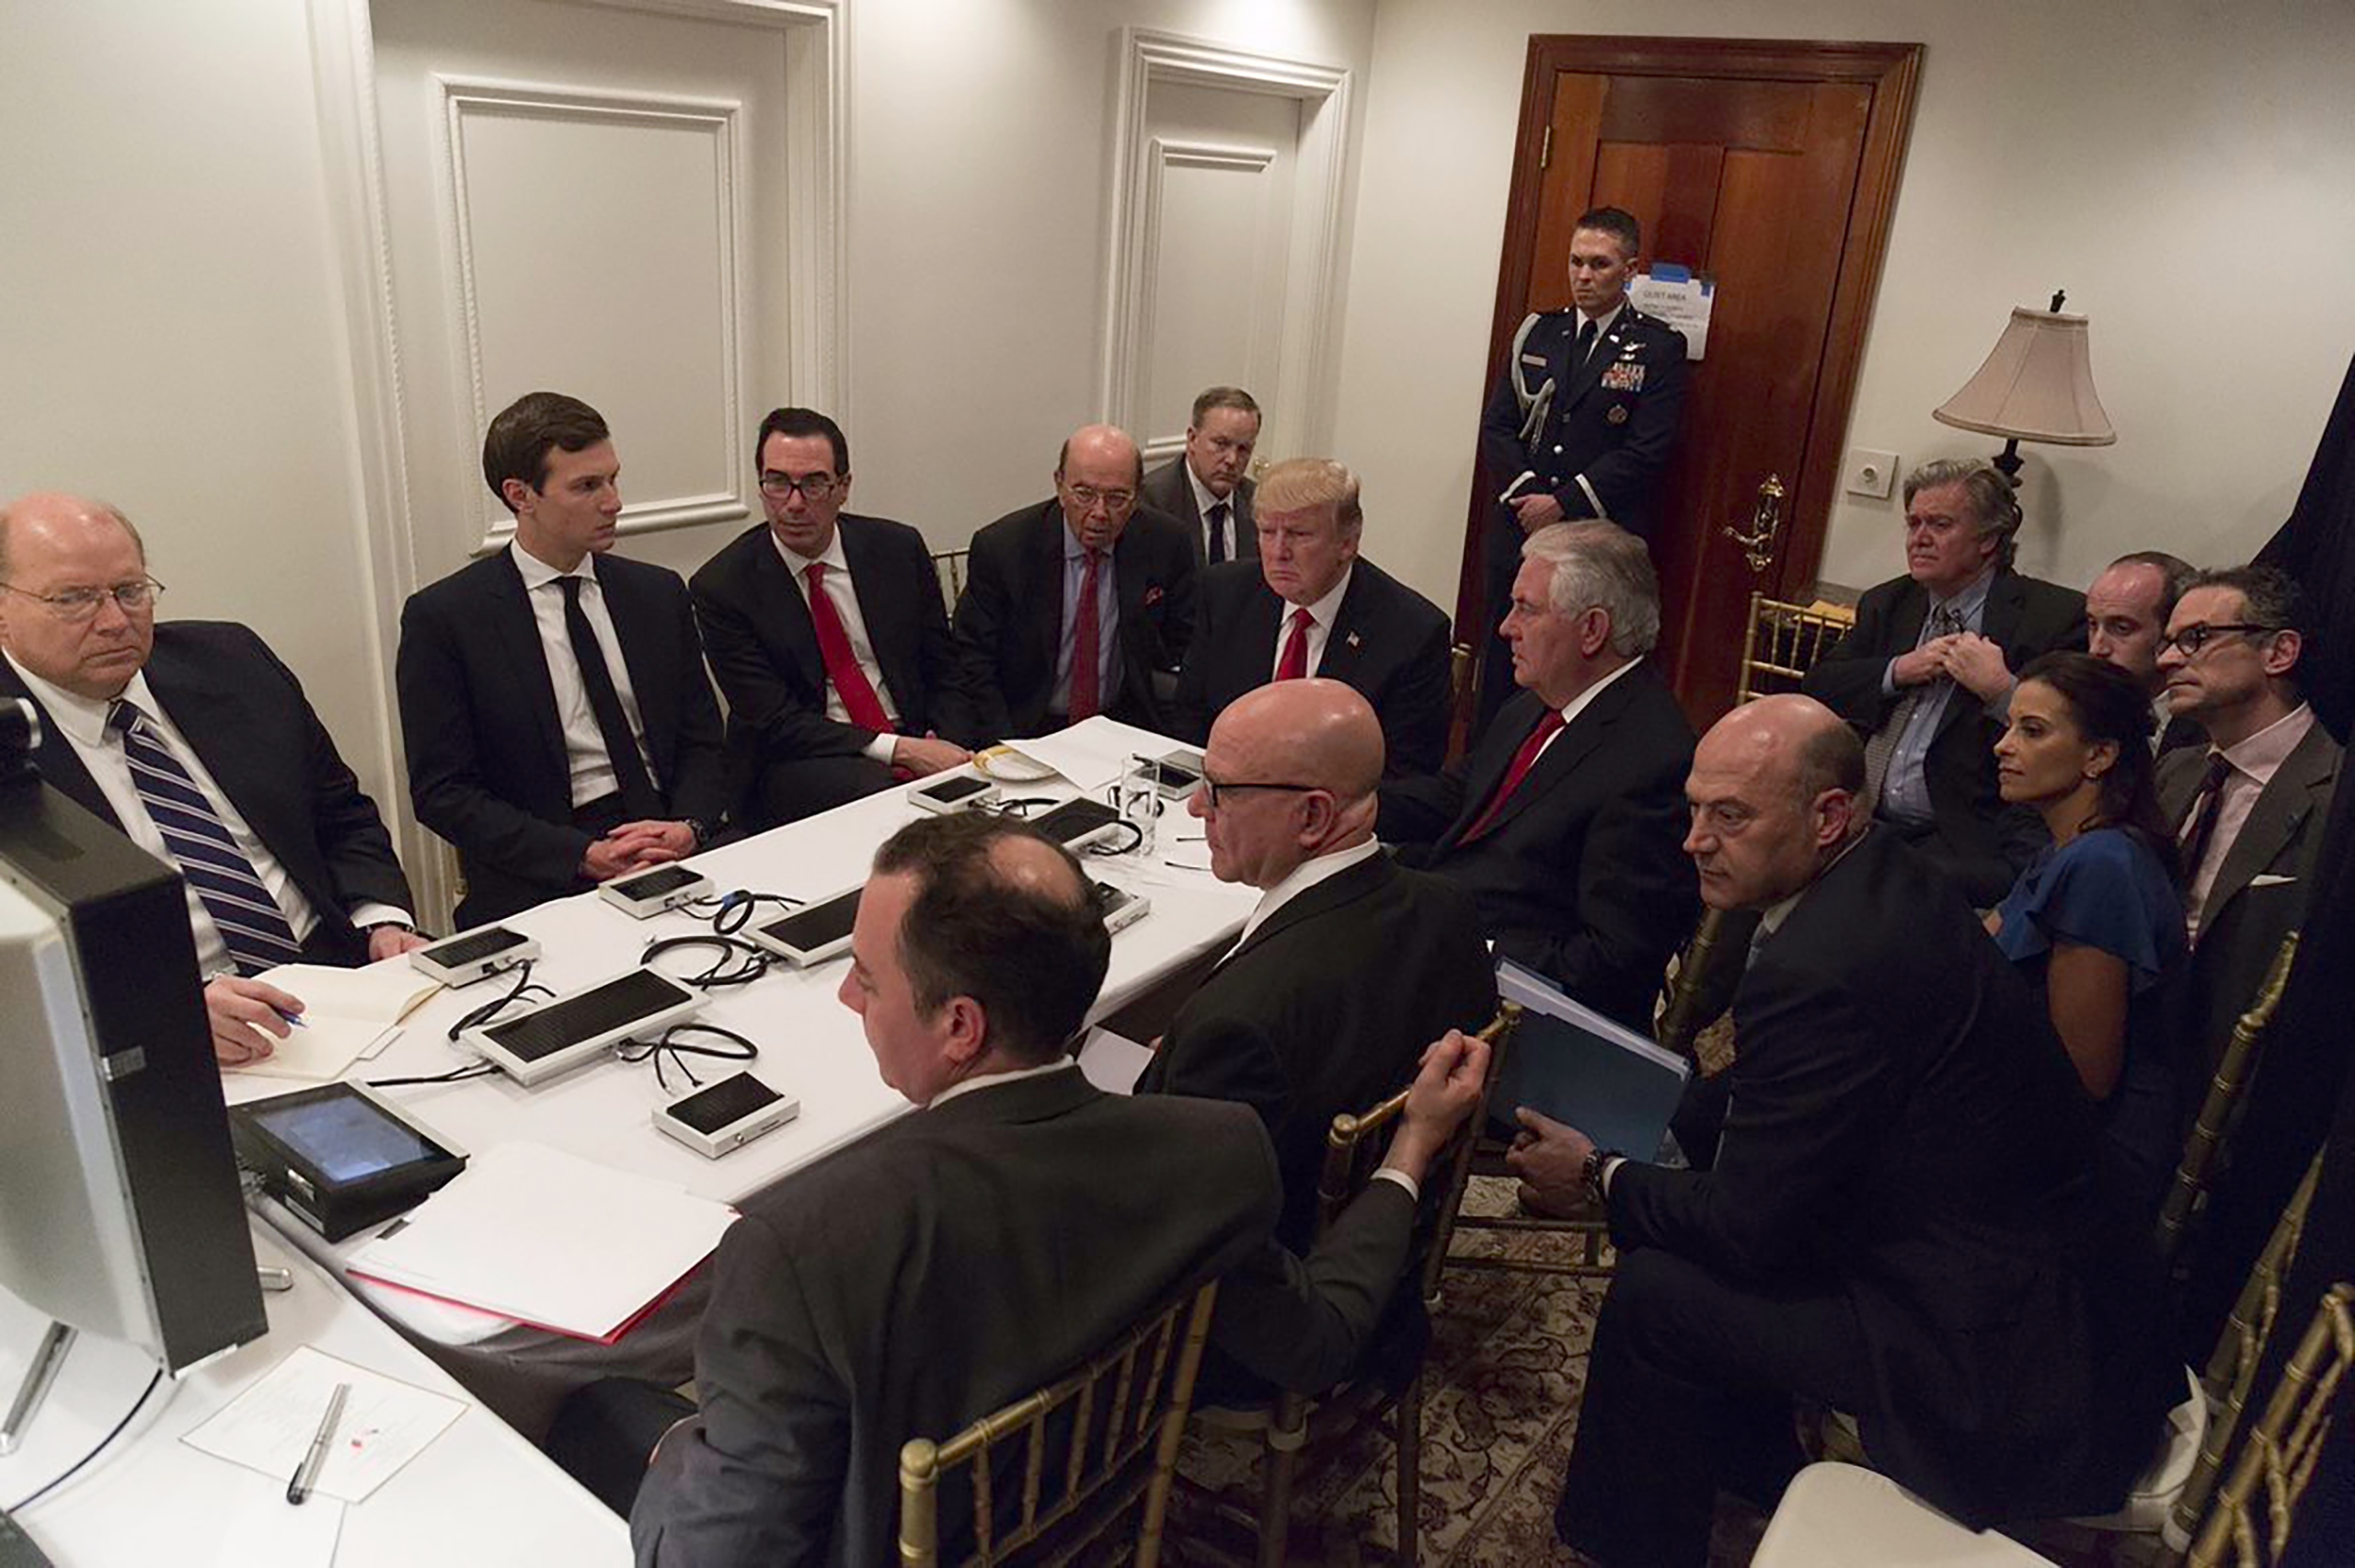 President Donald Trump and Jared Kushner (second, from left) receive a briefing on the Syria military strike from his National Security team, including a video teleconference with Secretary of Defense, Gen. James Mattis, and Chairman of the Joint Chiefs of Staff, Gen. Joseph Dunford, in a secured location at Mar-a-Lago in Palm Beach, Fla on April 6, 2017.